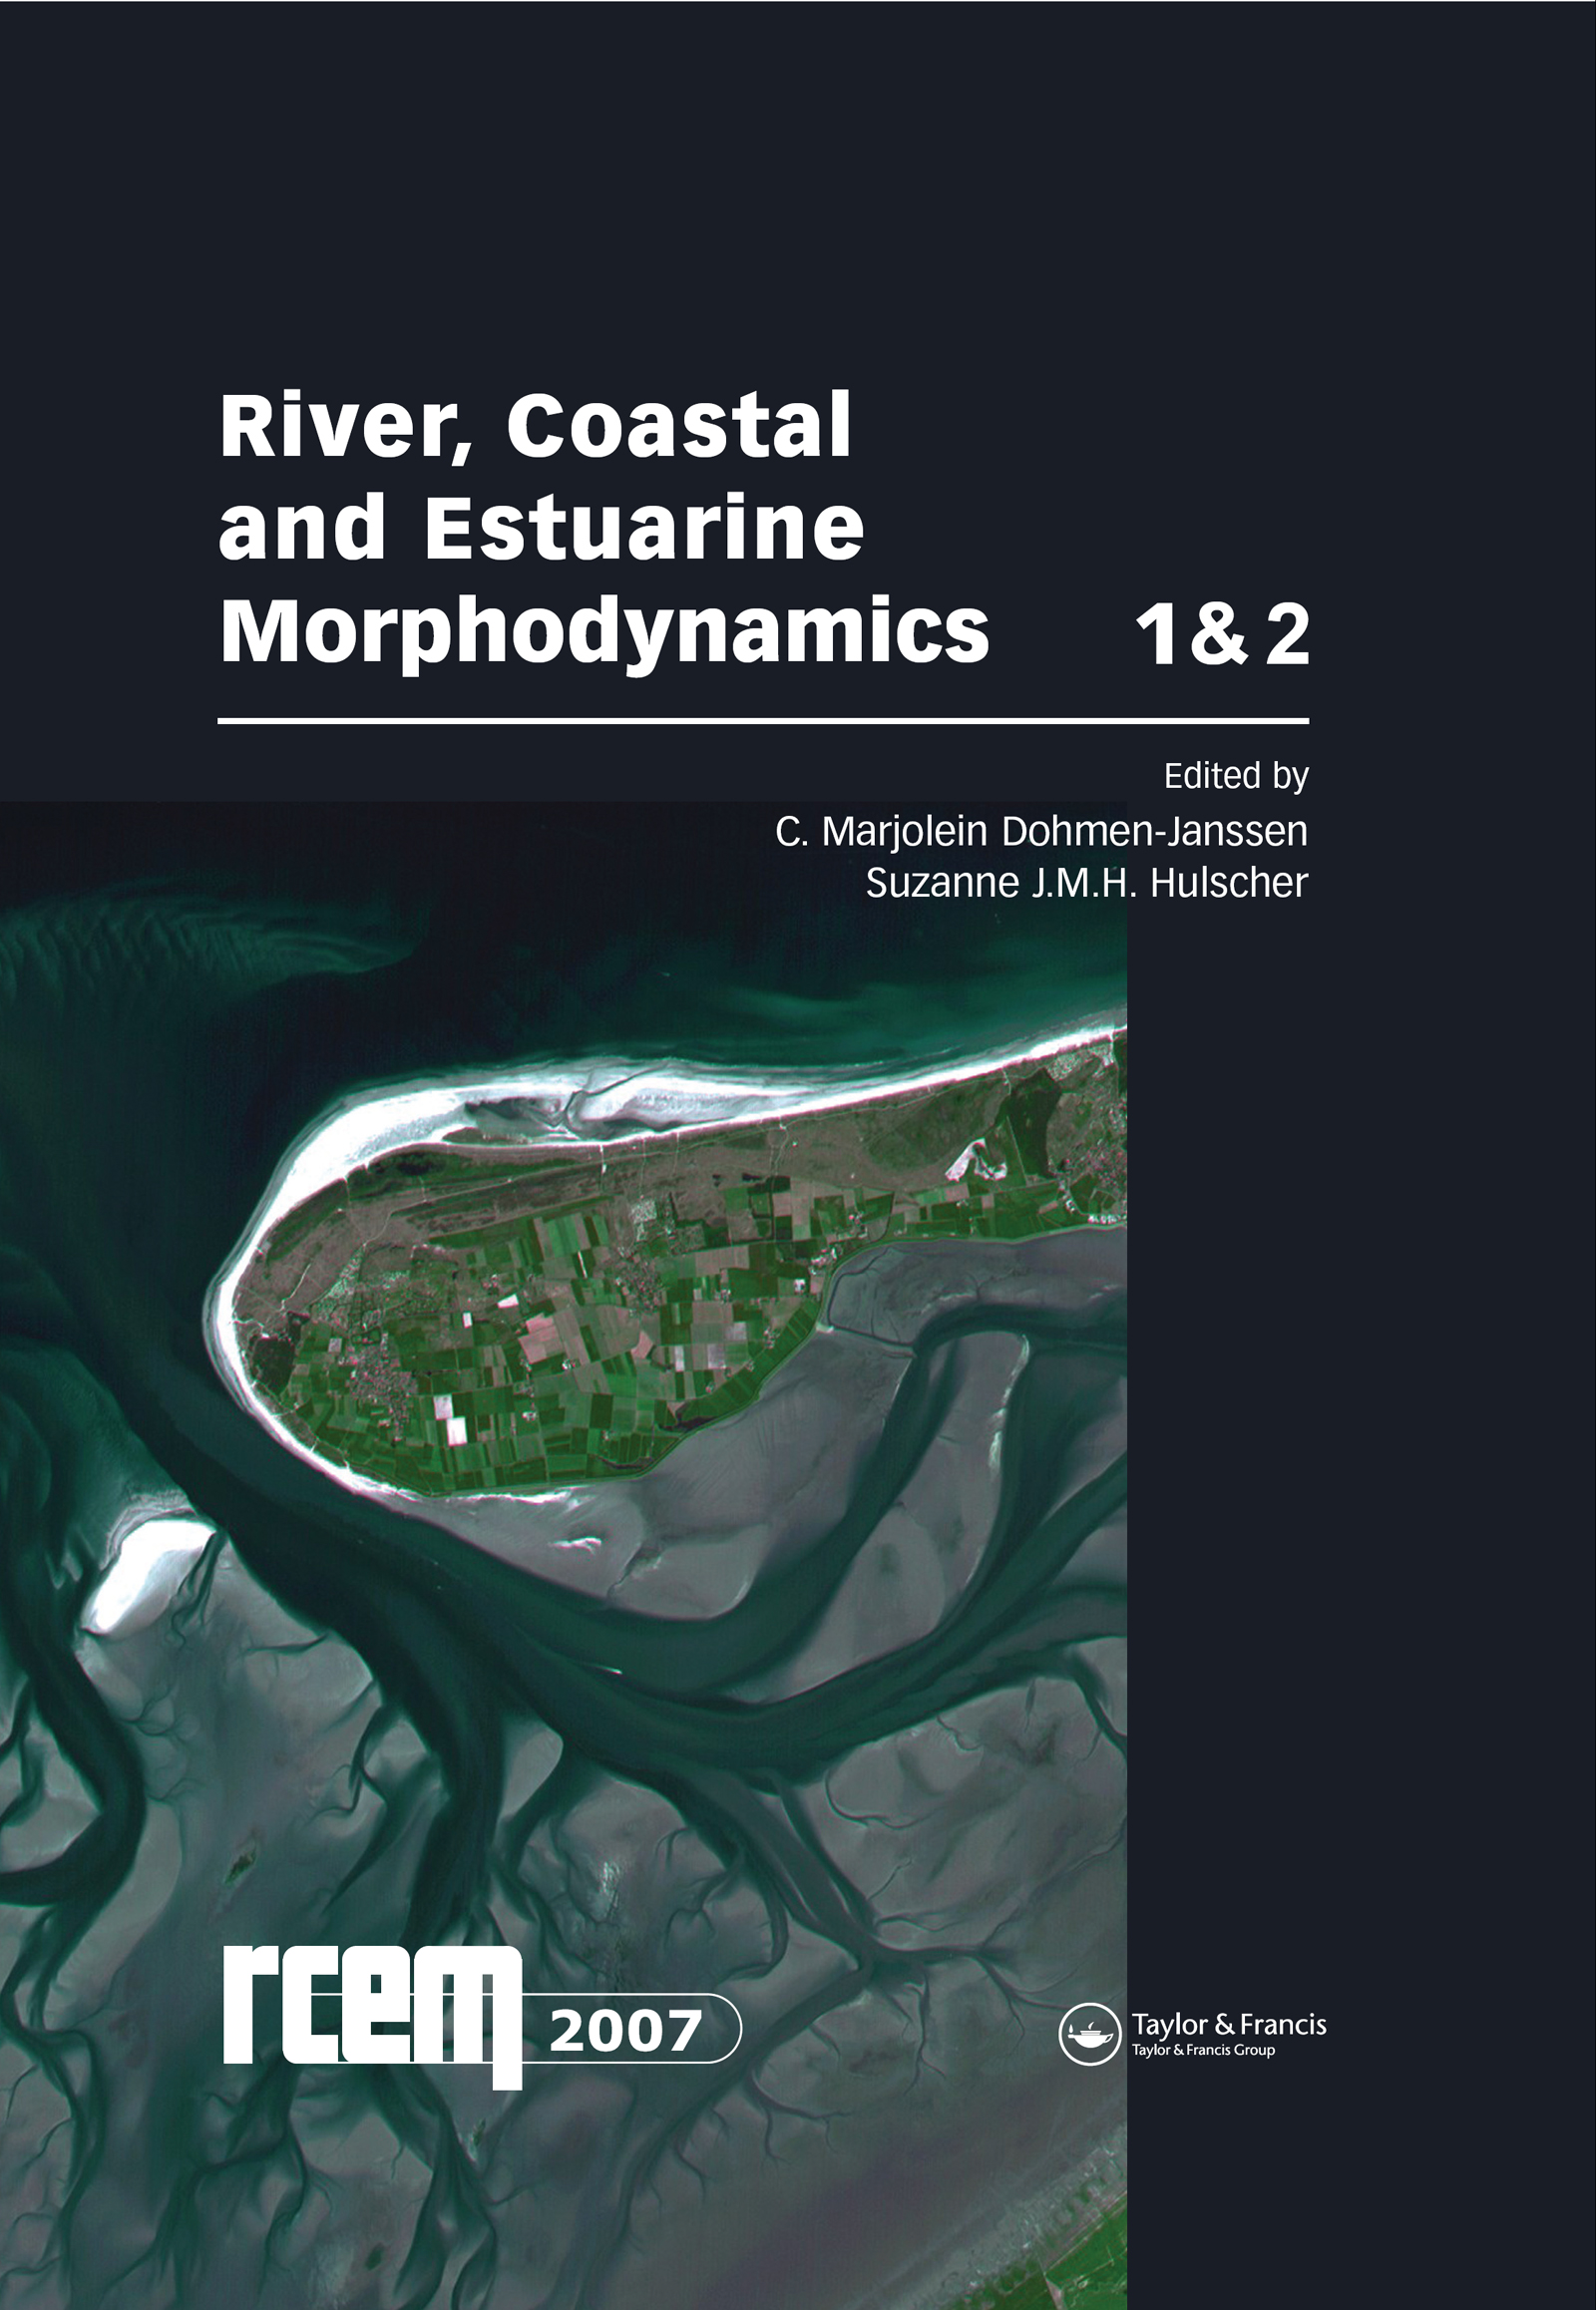 River, Coastal and Estuarine Morphodynamics: RCEM 2007, Two Volume Set: Proceedings of the 5th IAHR Symposium on River, Coastal and Estuarine Morphodynamics, Enschede, NL, 17-21 September 2007, 1st Edition (Hardback) book cover